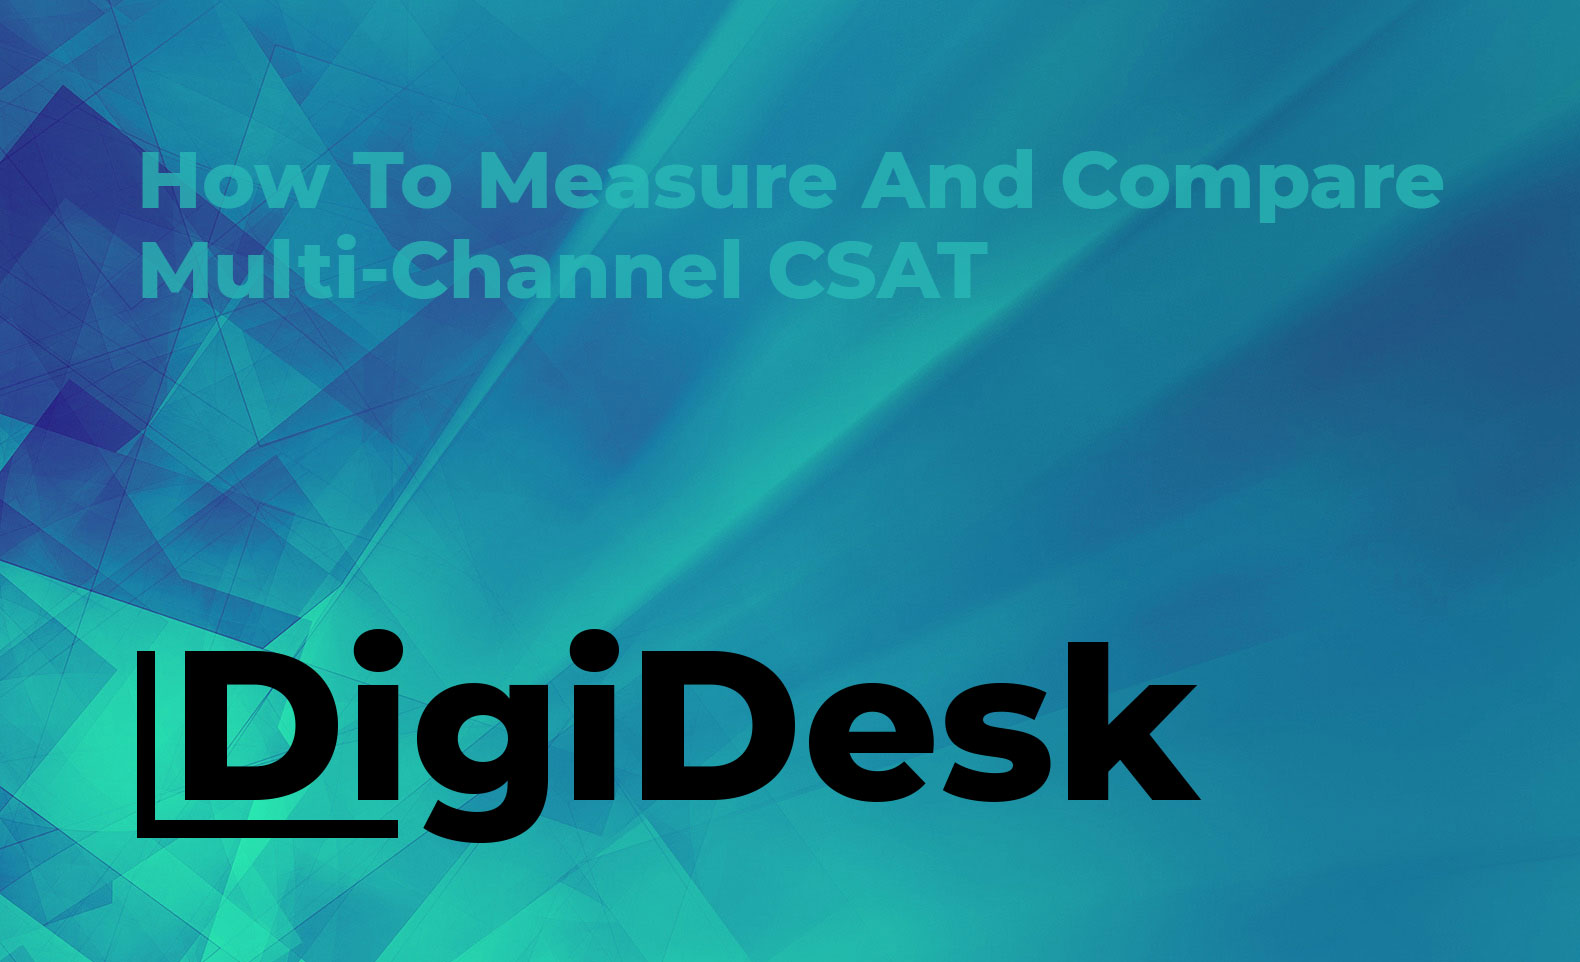 How To Measure And Compare CSAT Across Multiple Channels